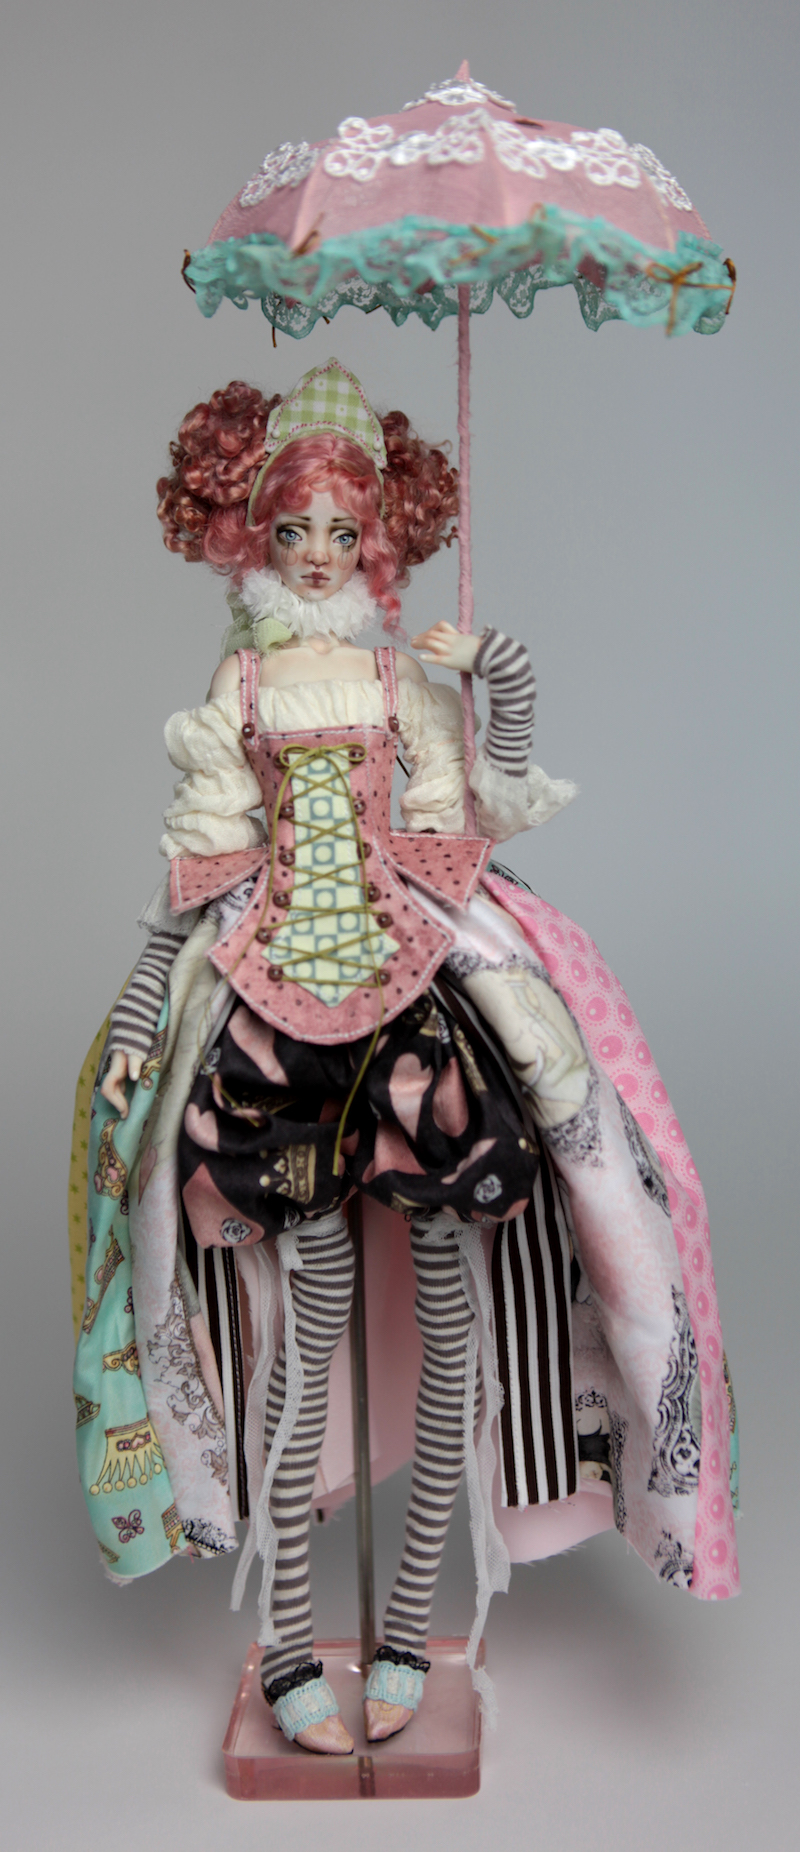 BJD Doll Ball Jointed Victorian Cotton Candy 1 15 Victorian Strawberry Clown Porcelain BJD Doll Luna